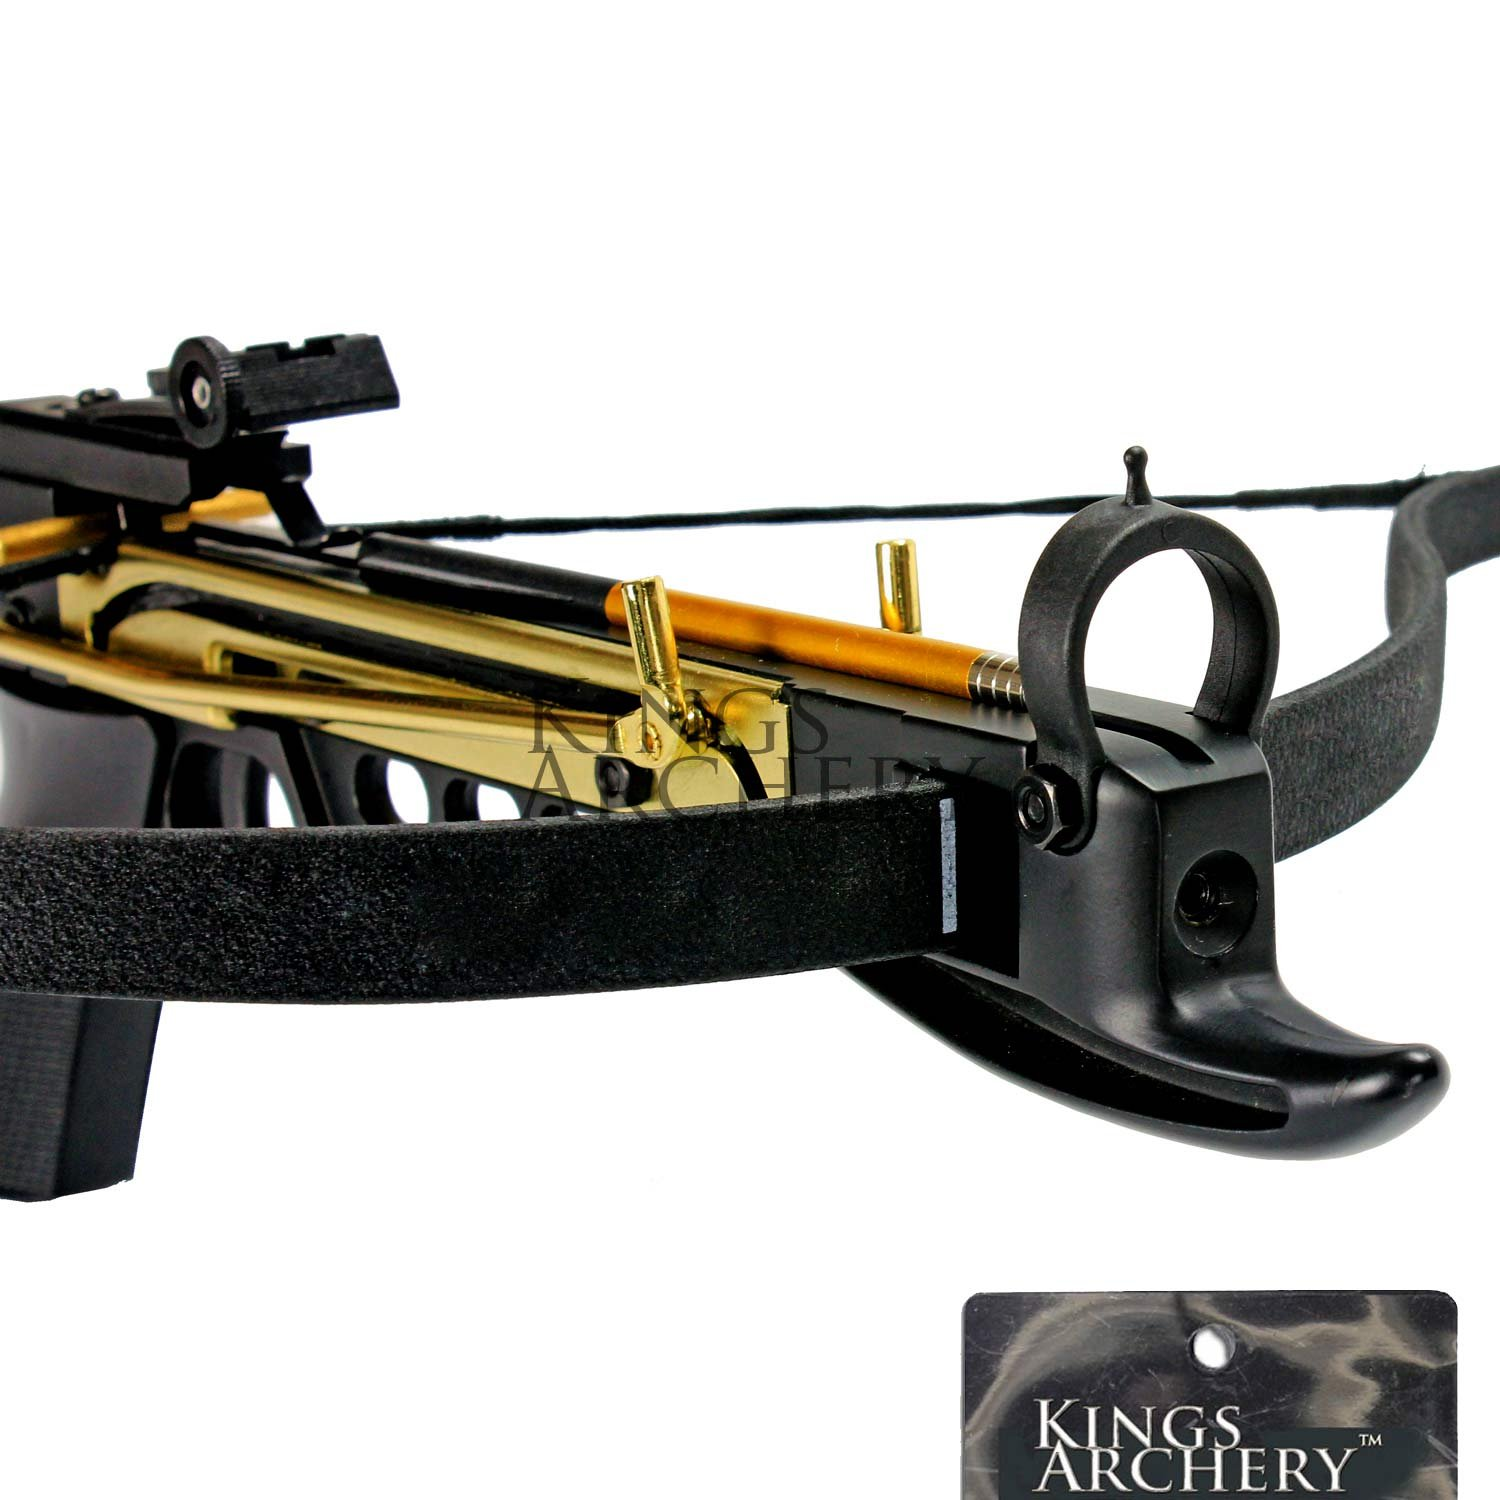 Crossbow Self-Cocking 80 LBS by KingsArchery® with Hunting Scope, 3 Aluminium Arrow Bolts, and Bonus 120-pack of Colored PVC Arrow Bolts + KingsArchery® Warranty by KingsArchery (Image #7)